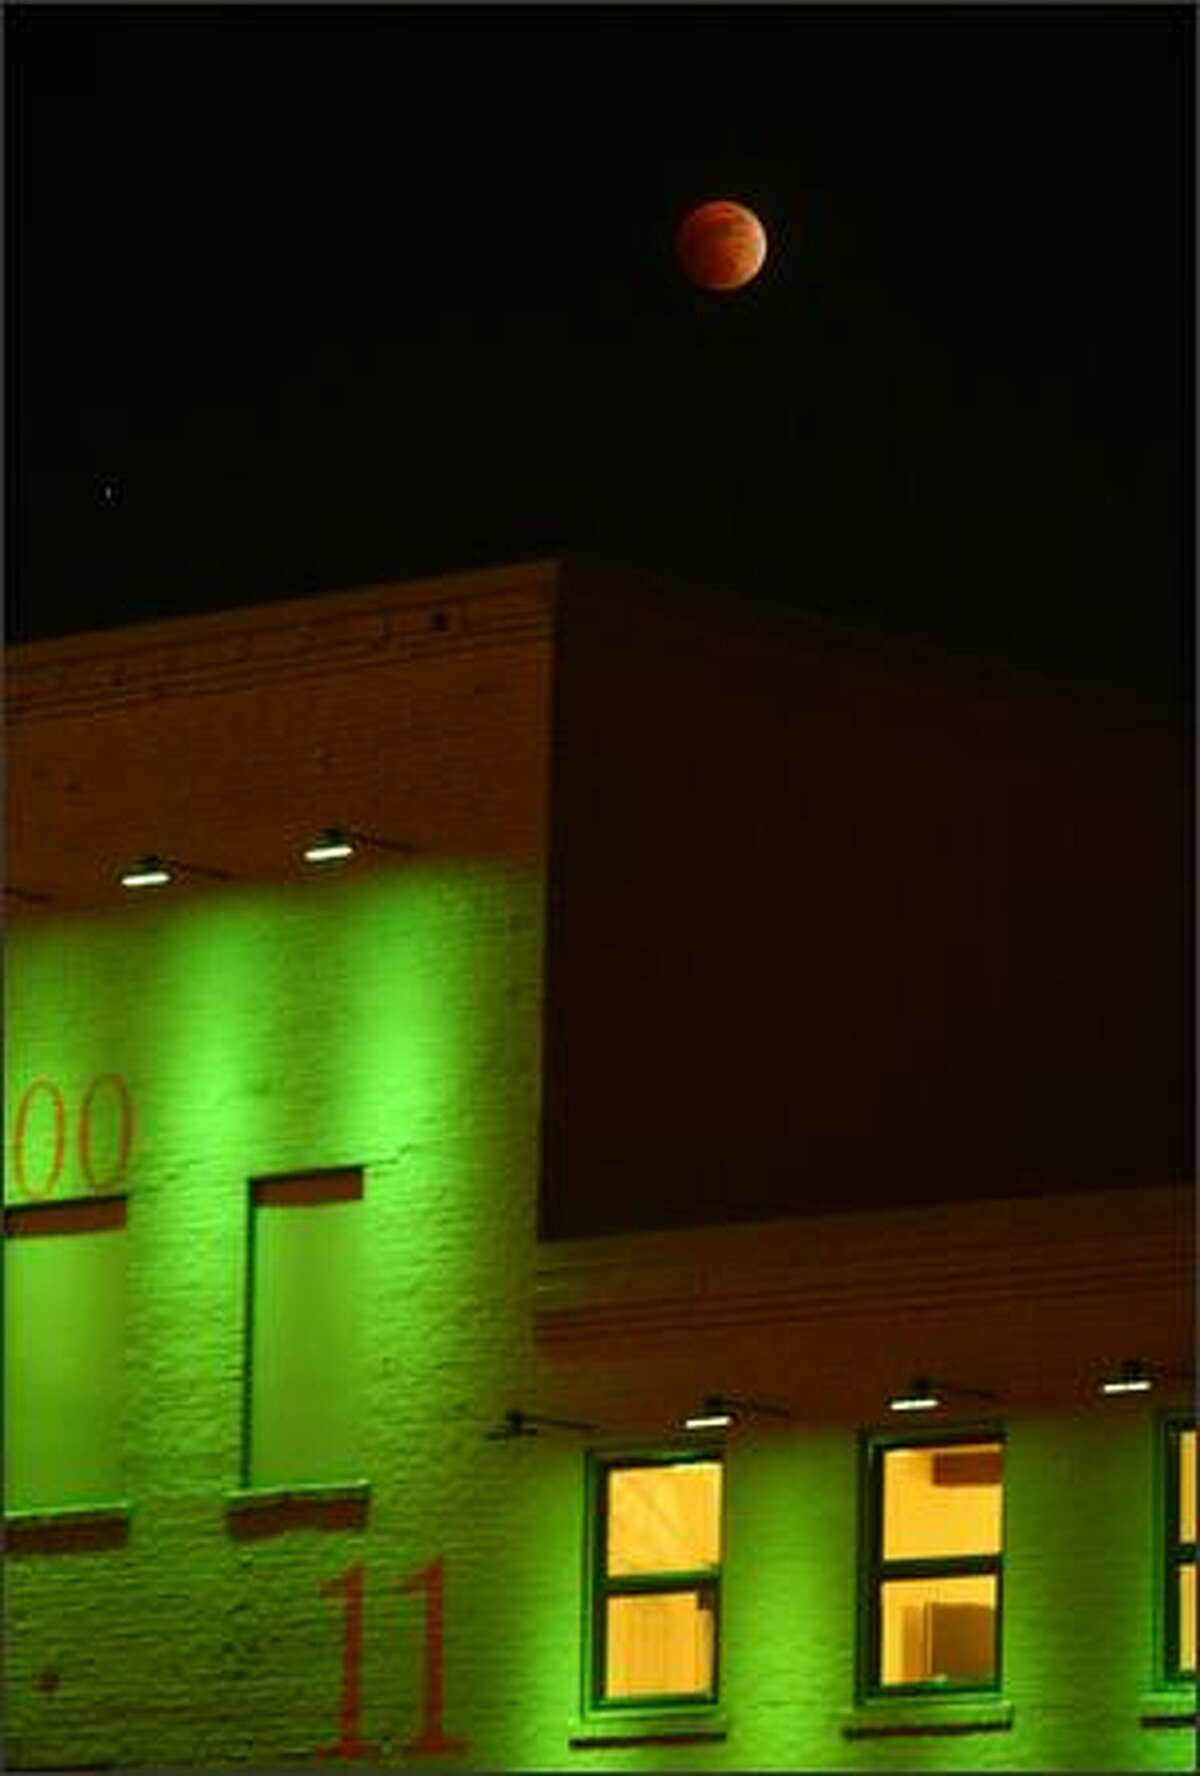 A lunar eclipse as seen above the X Gym building on Western Avenue in downtown Seattle Wednesday night, Feb. 20, 2008.